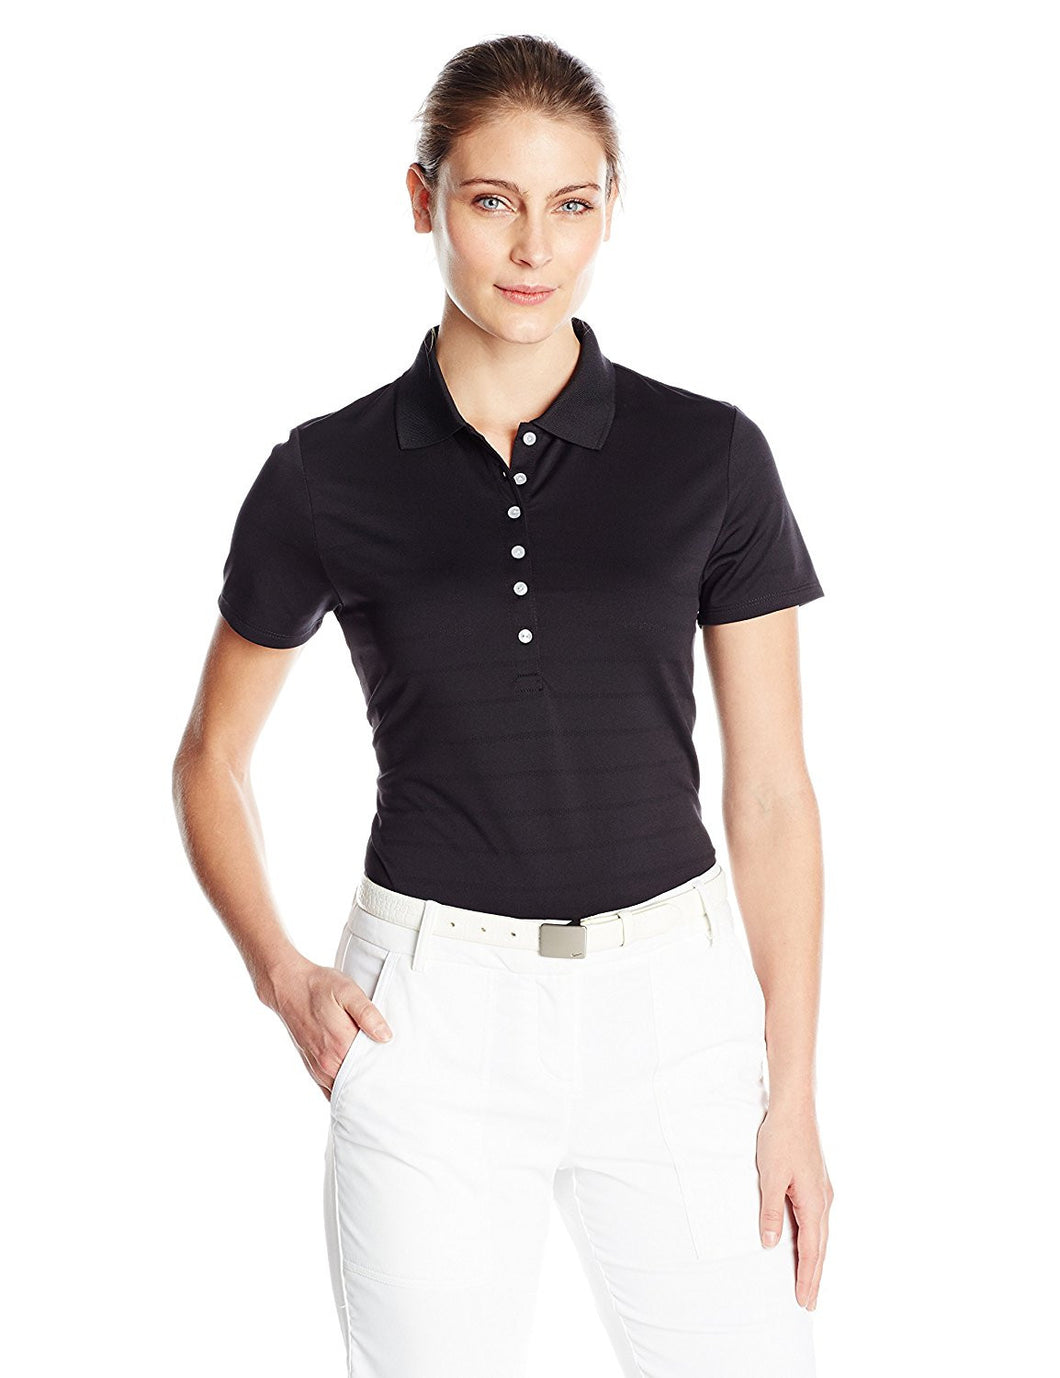 Callaway Womens Size Large Golf Short Sleeve Pique Open Mesh Polo Shirt, Black